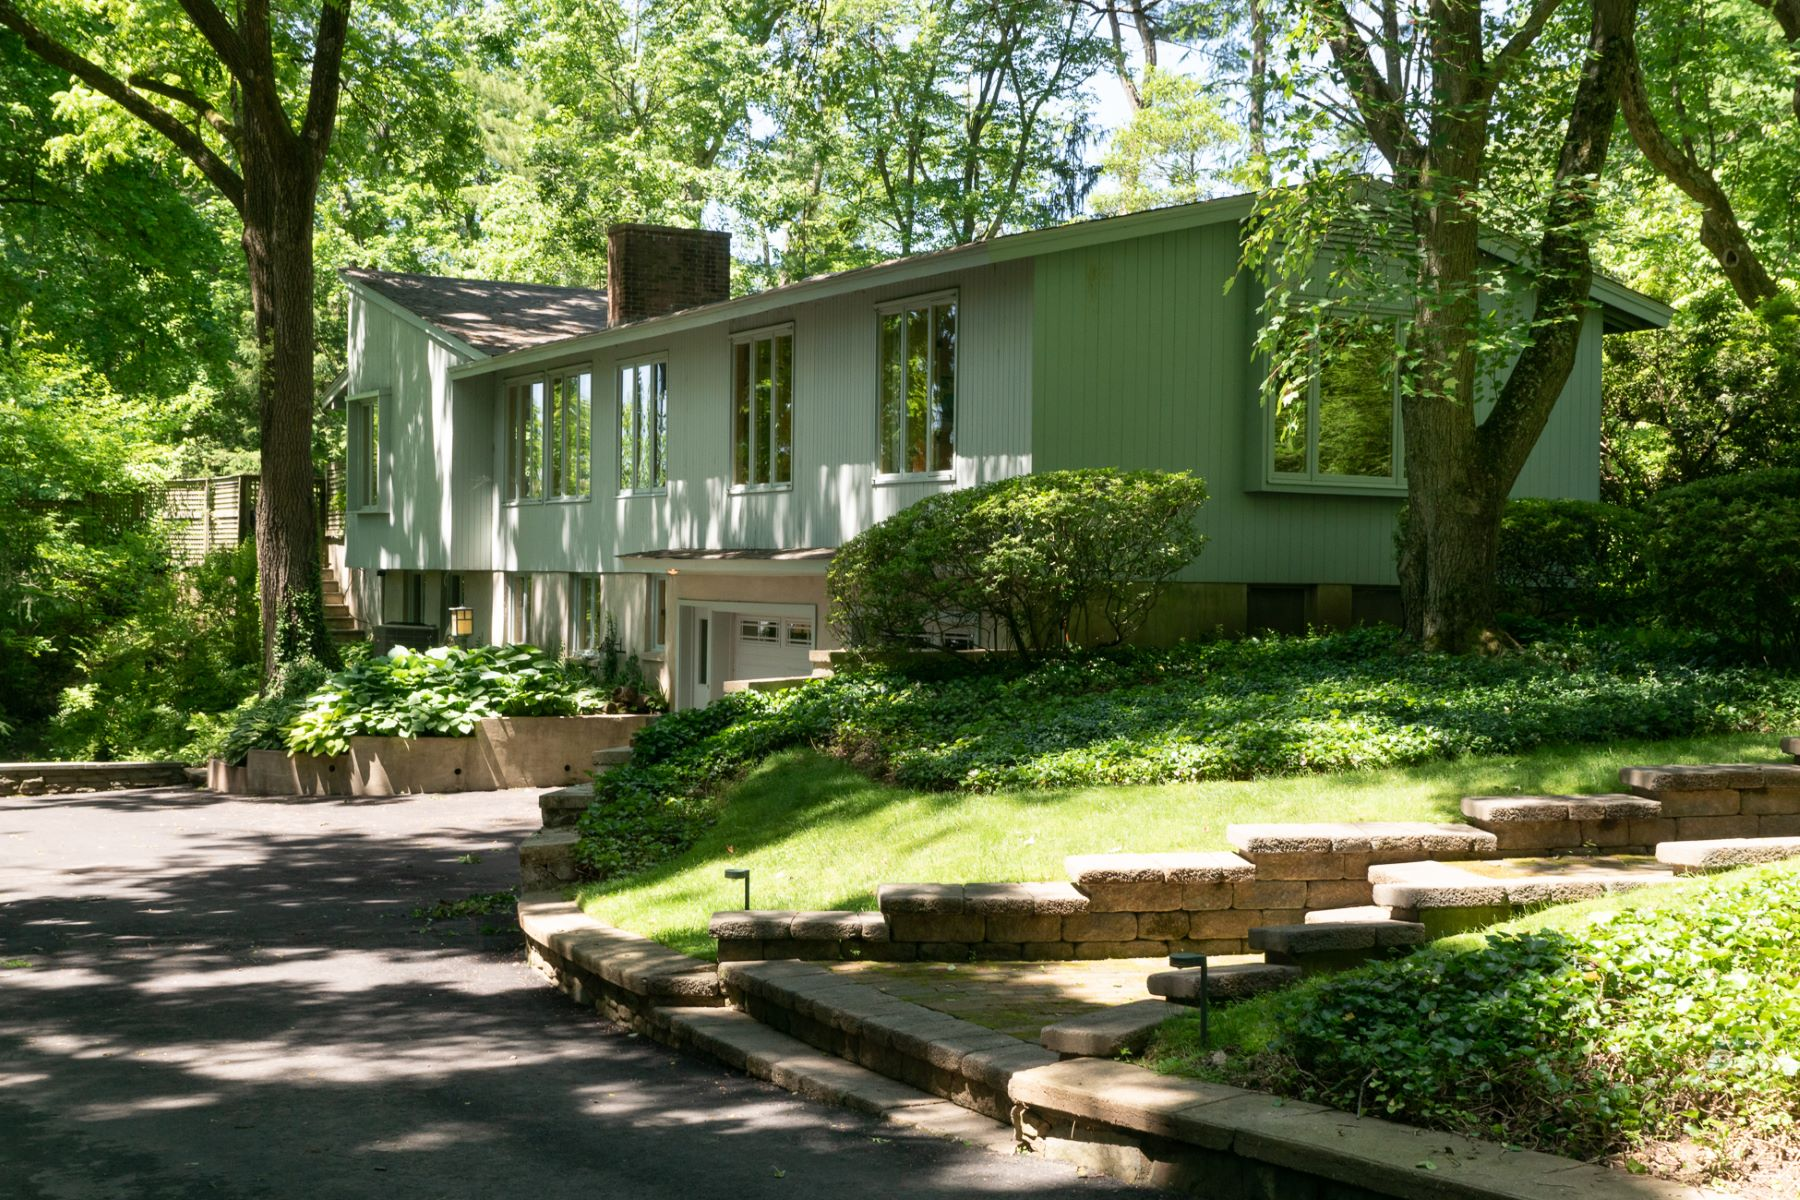 Single Family Homes for Sale at Wrapping Gardens Beguile at Mid-Century Modern 30 Russell Road, Princeton, New Jersey 08540 United States